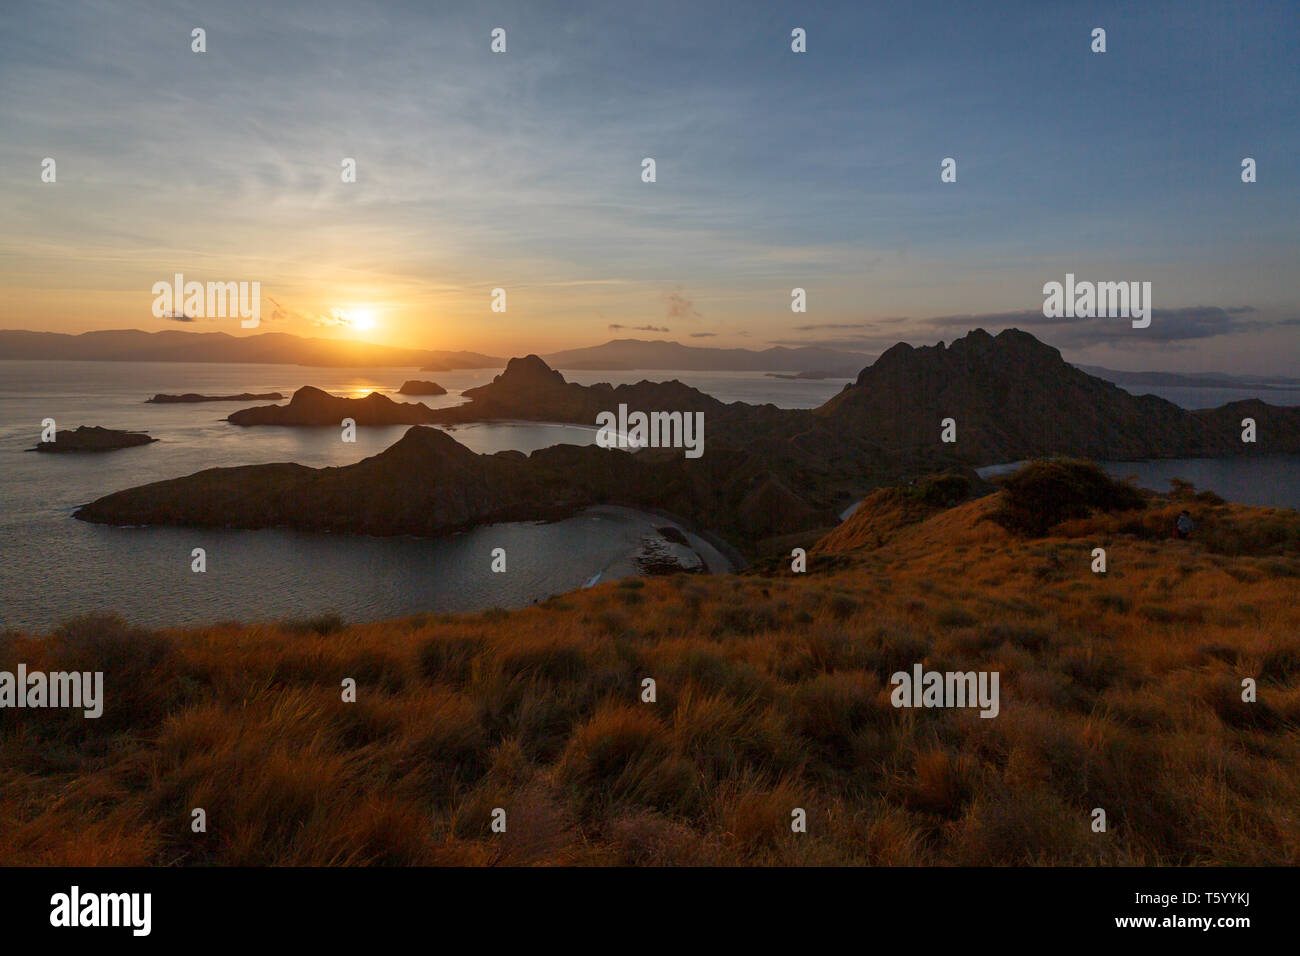 Sunset from hilltop on mountains in Komodo national park silhouettes rock outcrops off shore - Stock Image